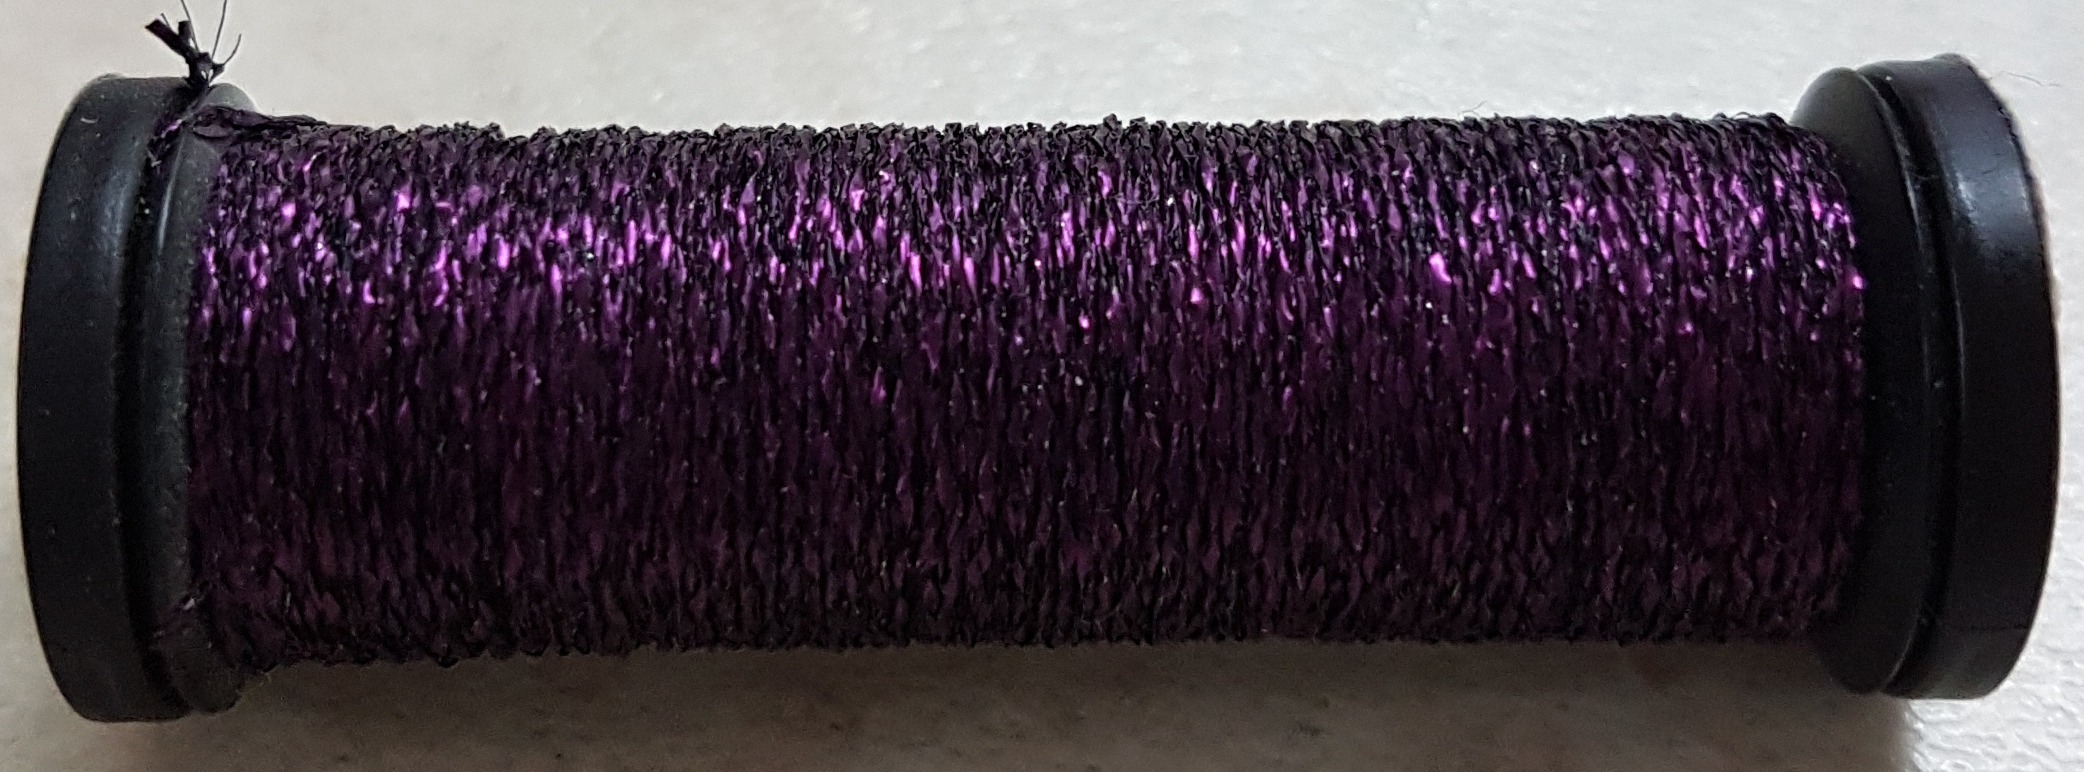 Kreinik 4 Very Fine Braid 026V Amethyst 11 meters/12 yards